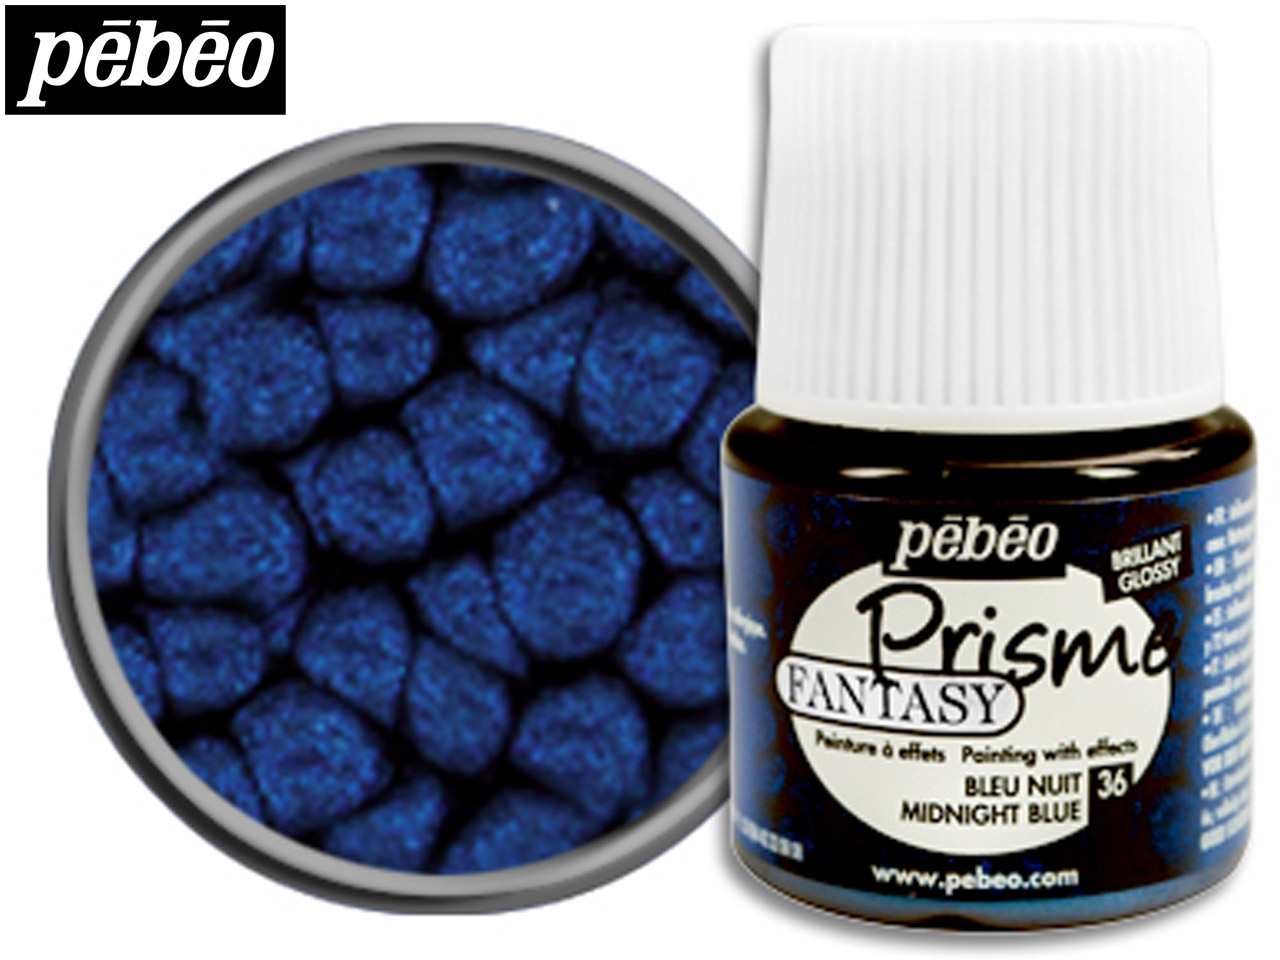 Pebeo Fantasy Prisme, Midnight     Blue, 45ml Un1263